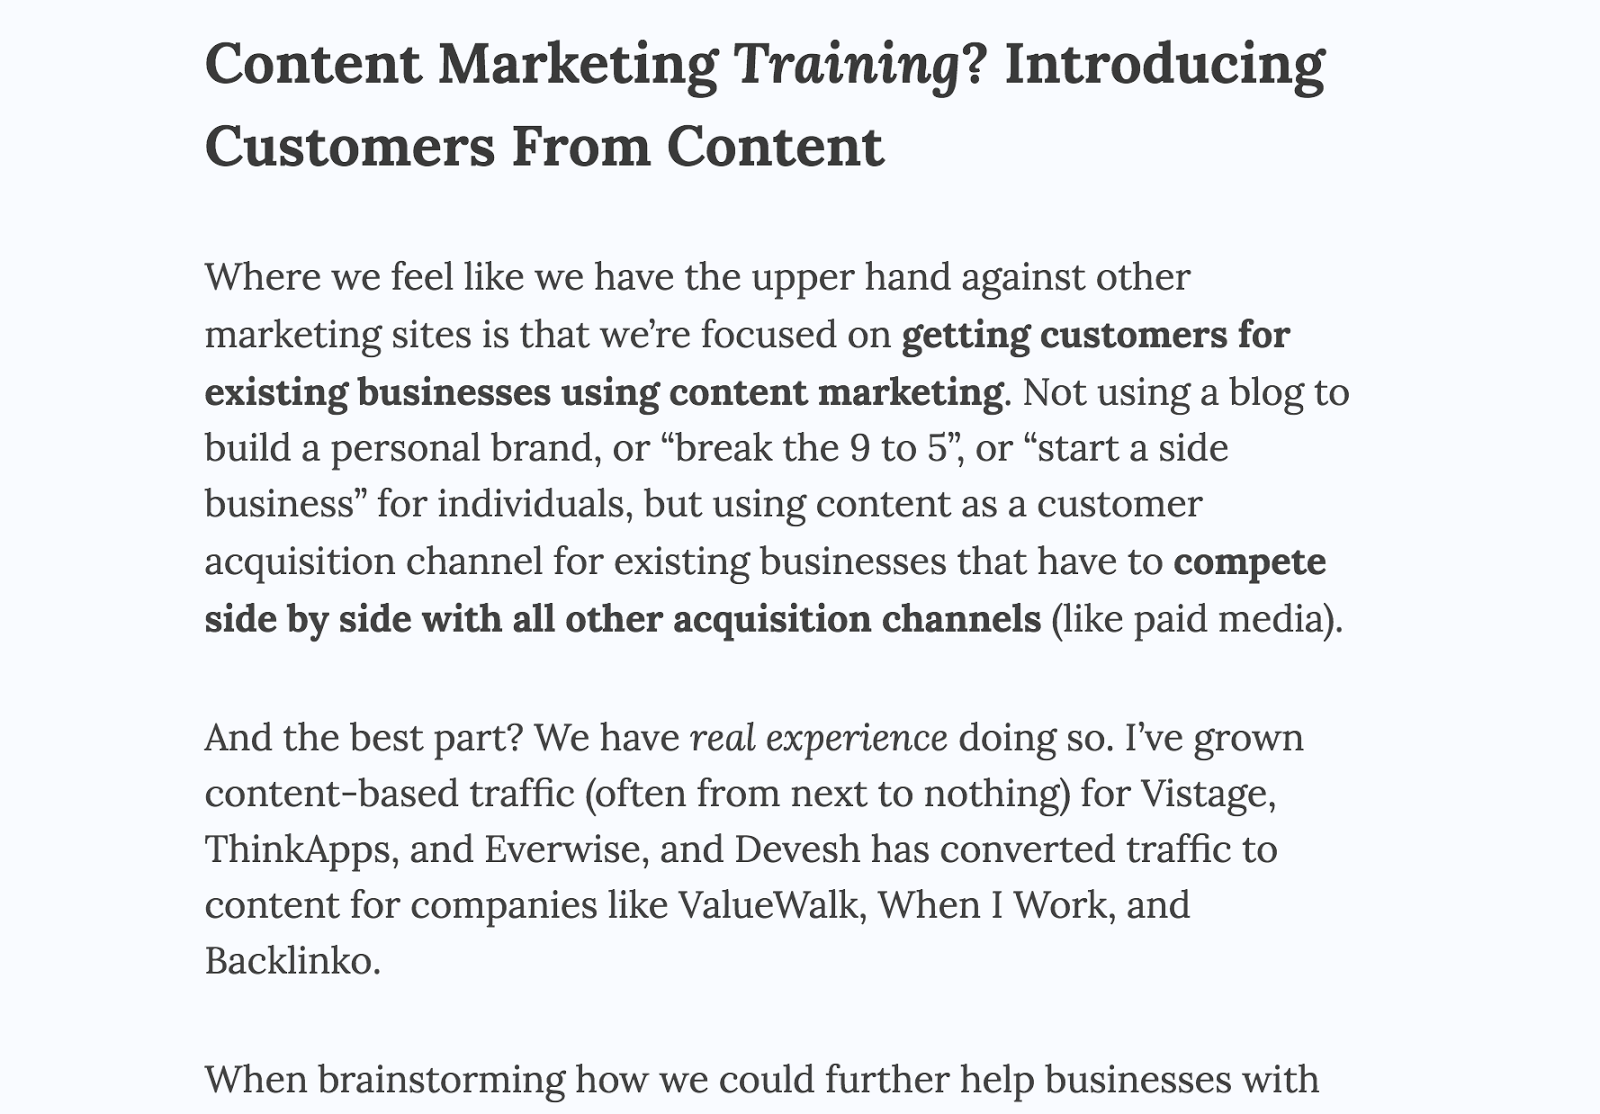 customersfromcontenttraining